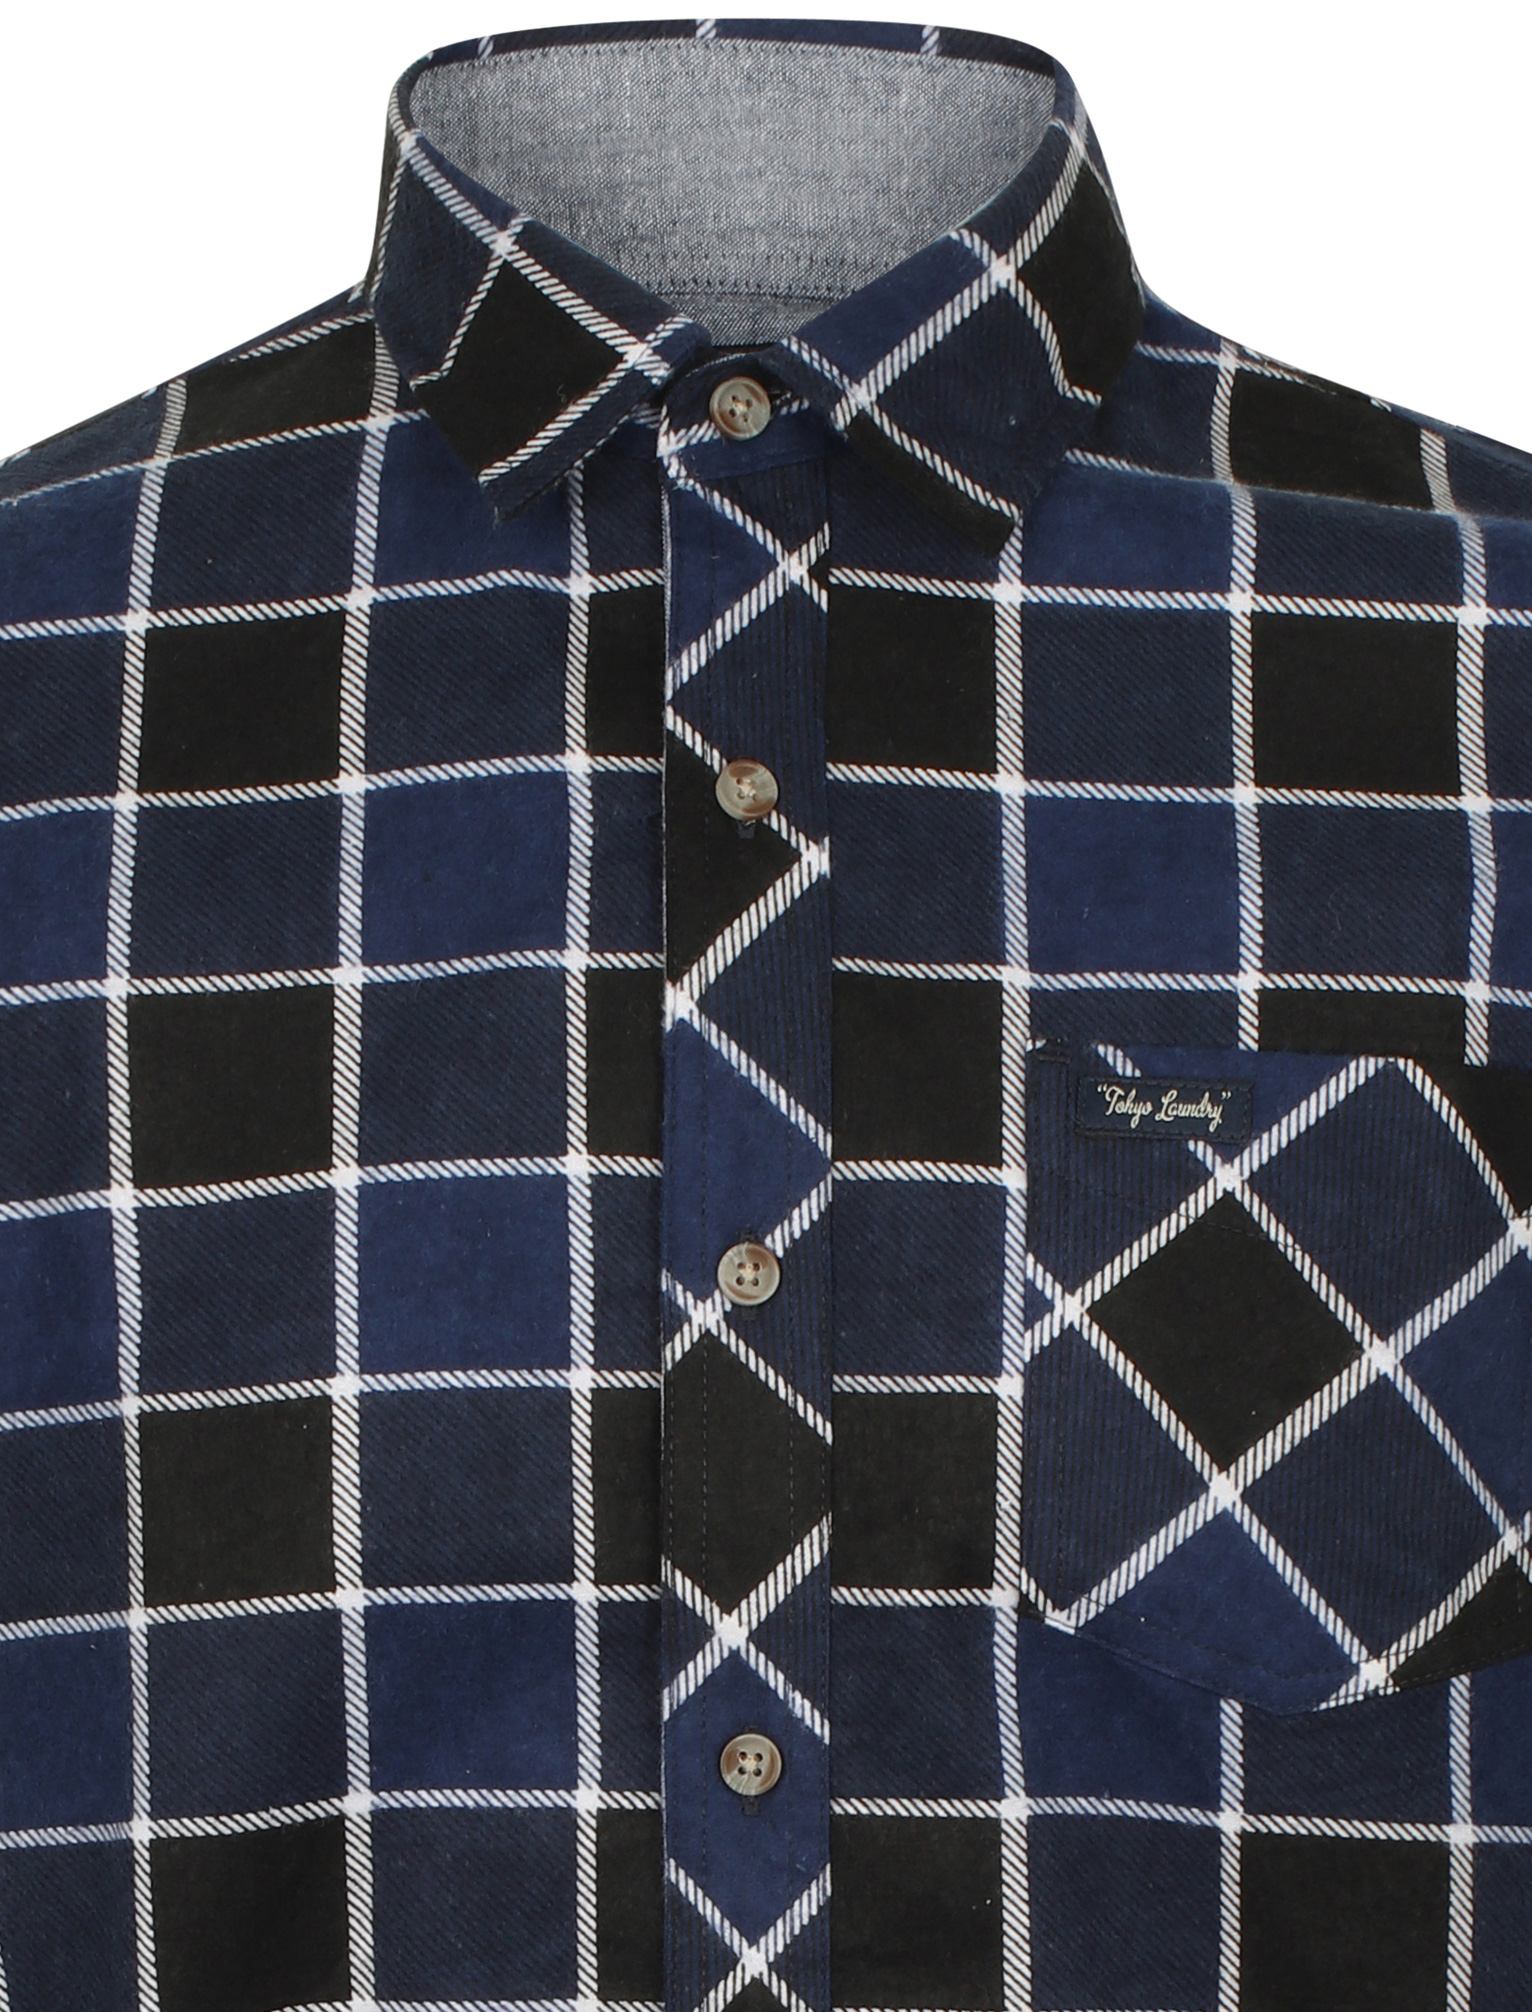 New-Mens-Tokyo-Laundry-Cotton-Long-Sleeve-Checked-Flannel-Shirt-Size-S-XXL thumbnail 4